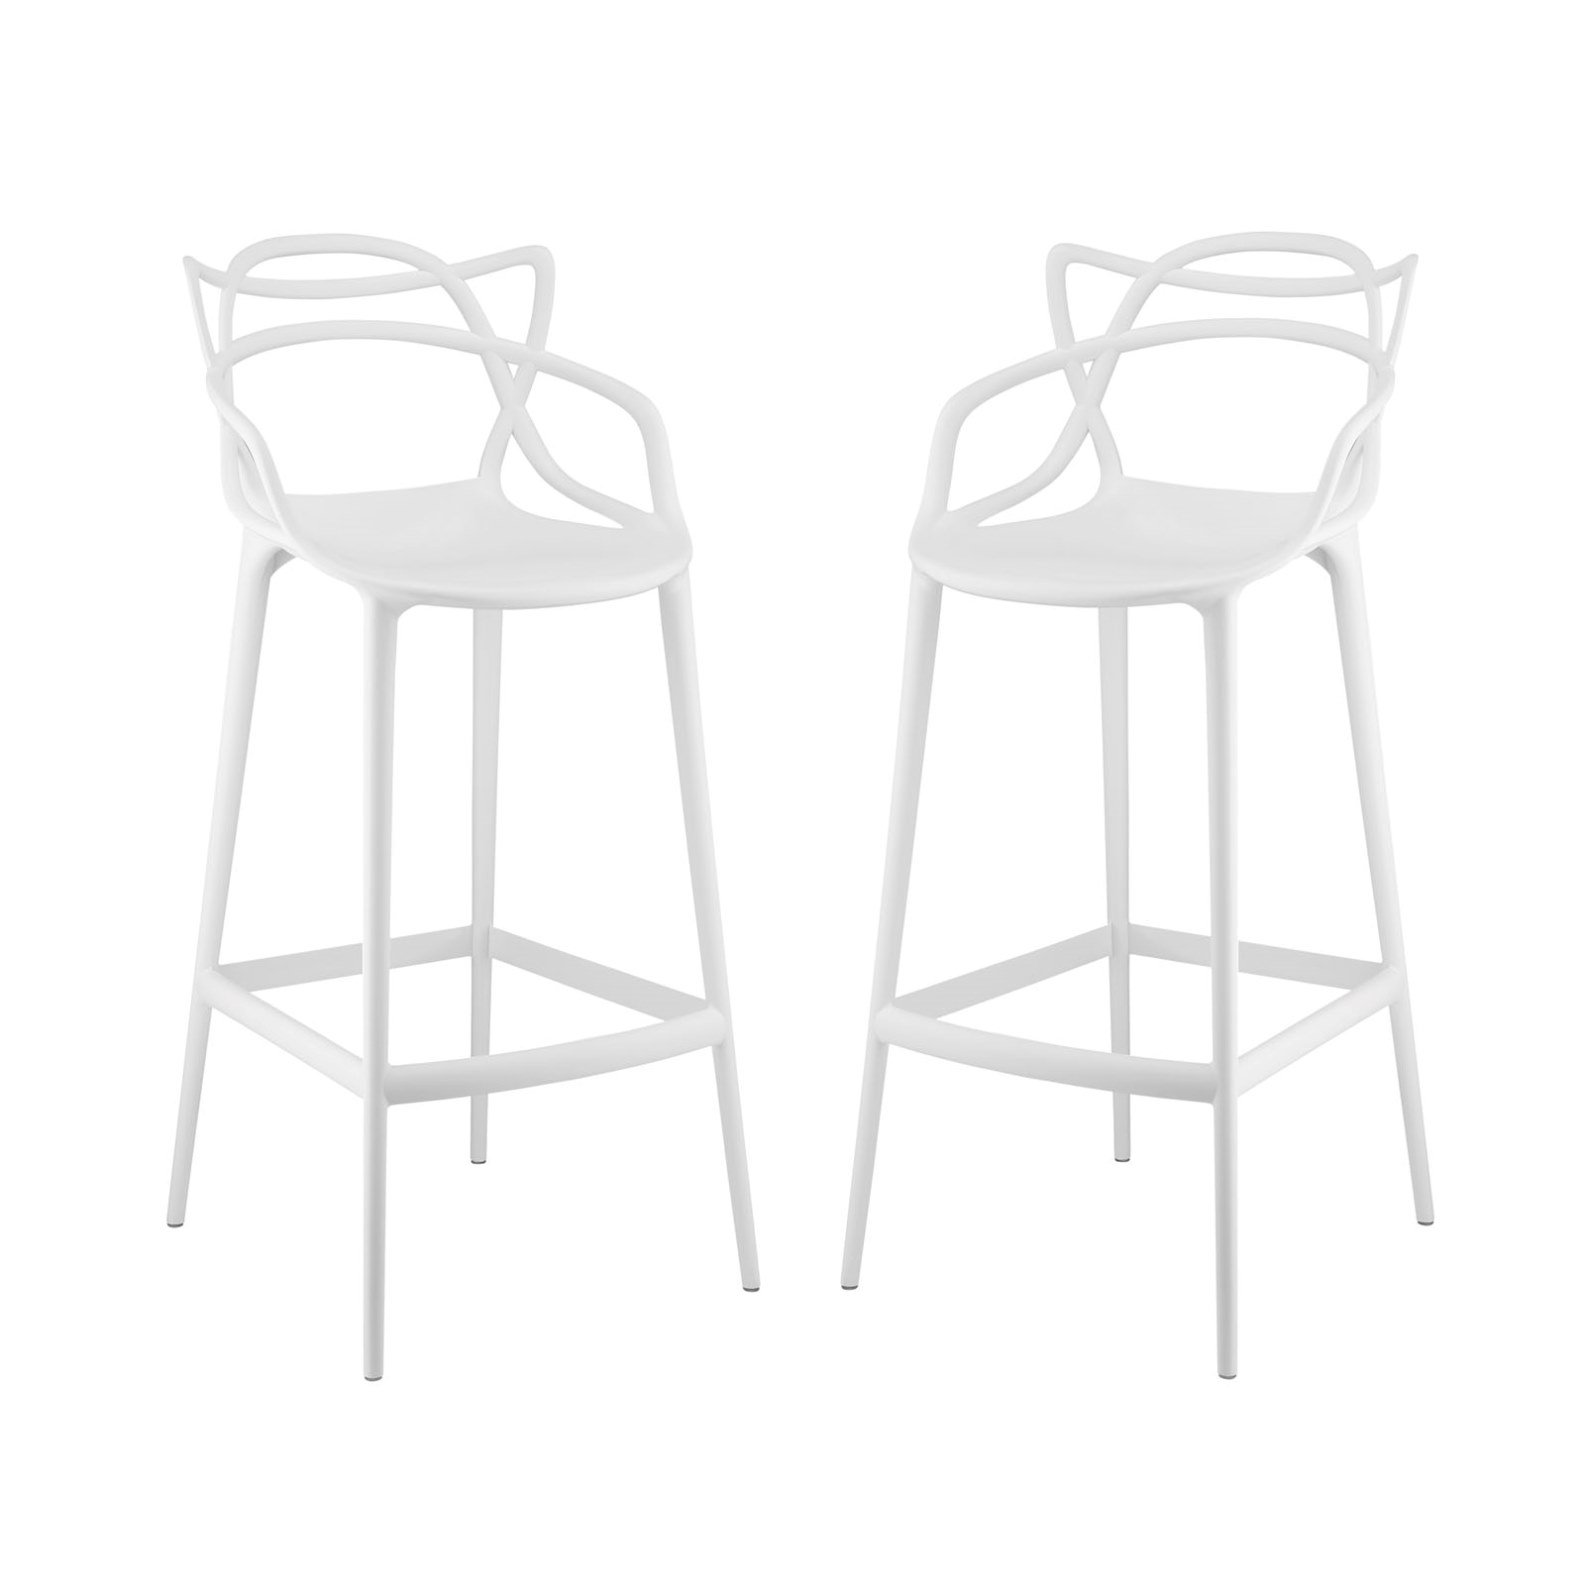 Modern Contemporary Urban Design Outdoor Kitchen Room Bar Stool Chair ( Set of Two), White, Plastic